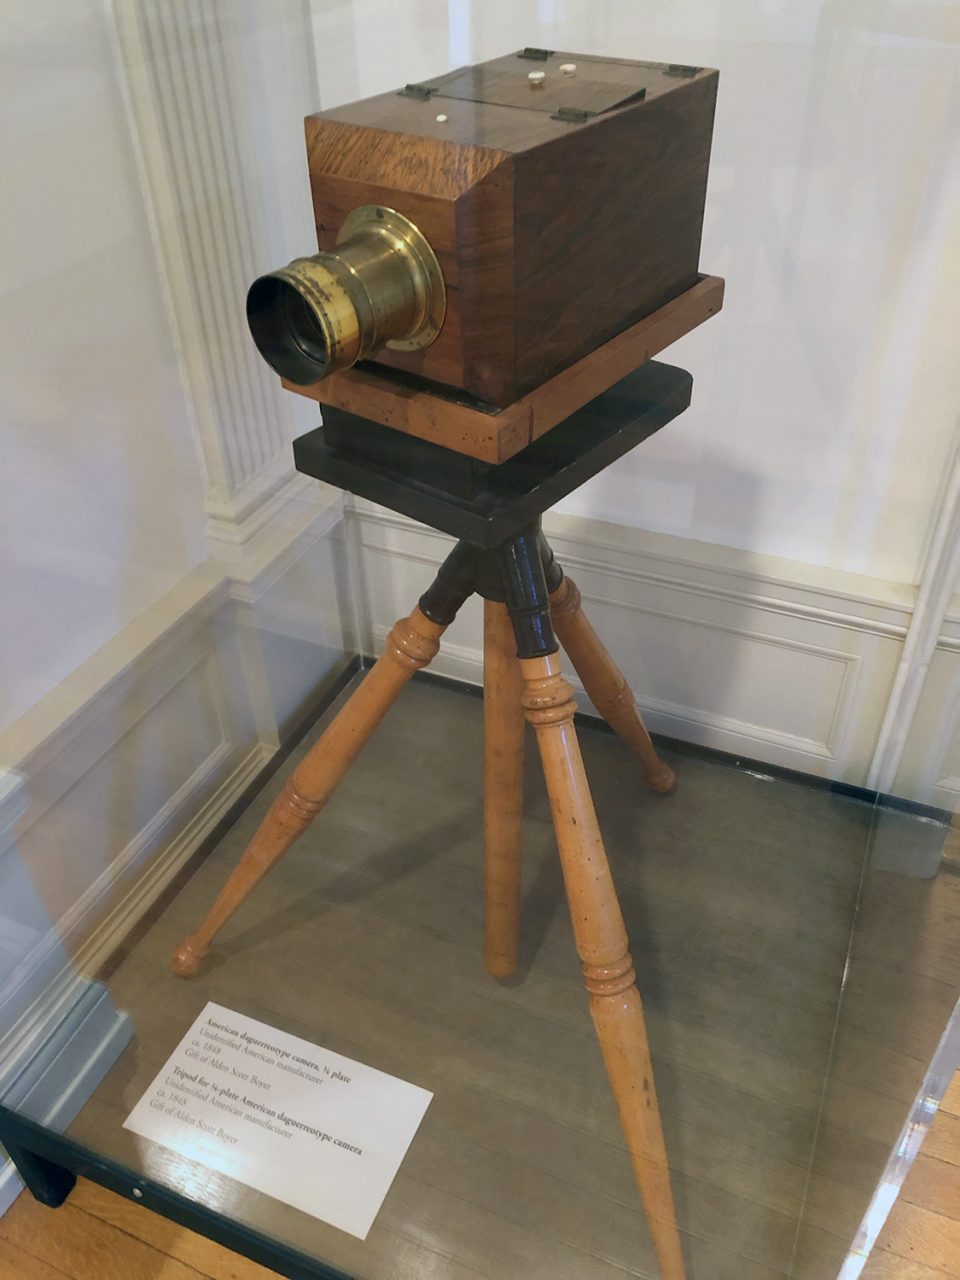 American Daguerreotype camera on a tripod, seen inside one of the rooms of the mansion.